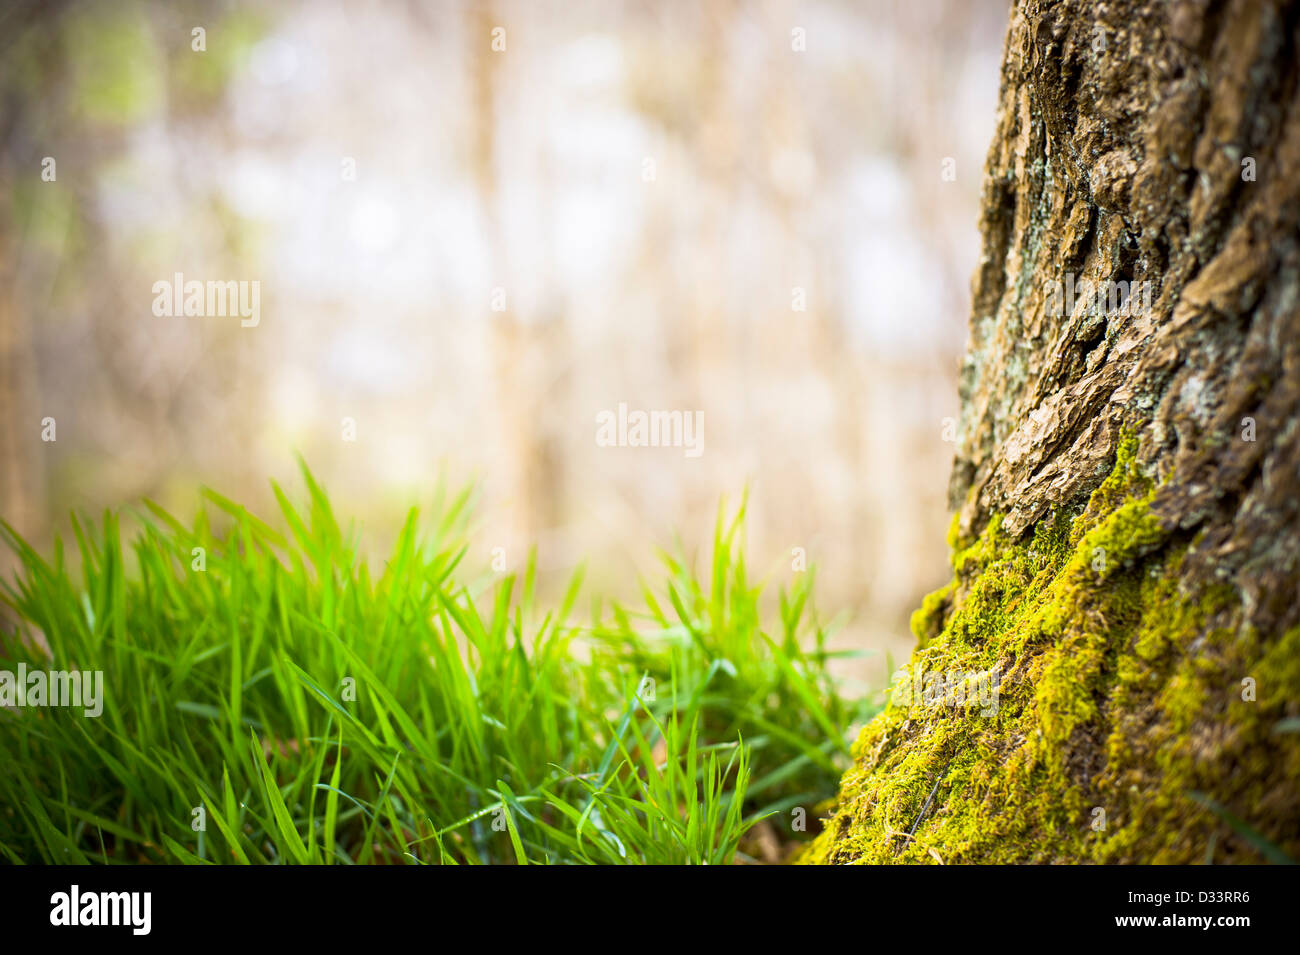 Tree trunk bark with moss and blades of green grass - Stock Image